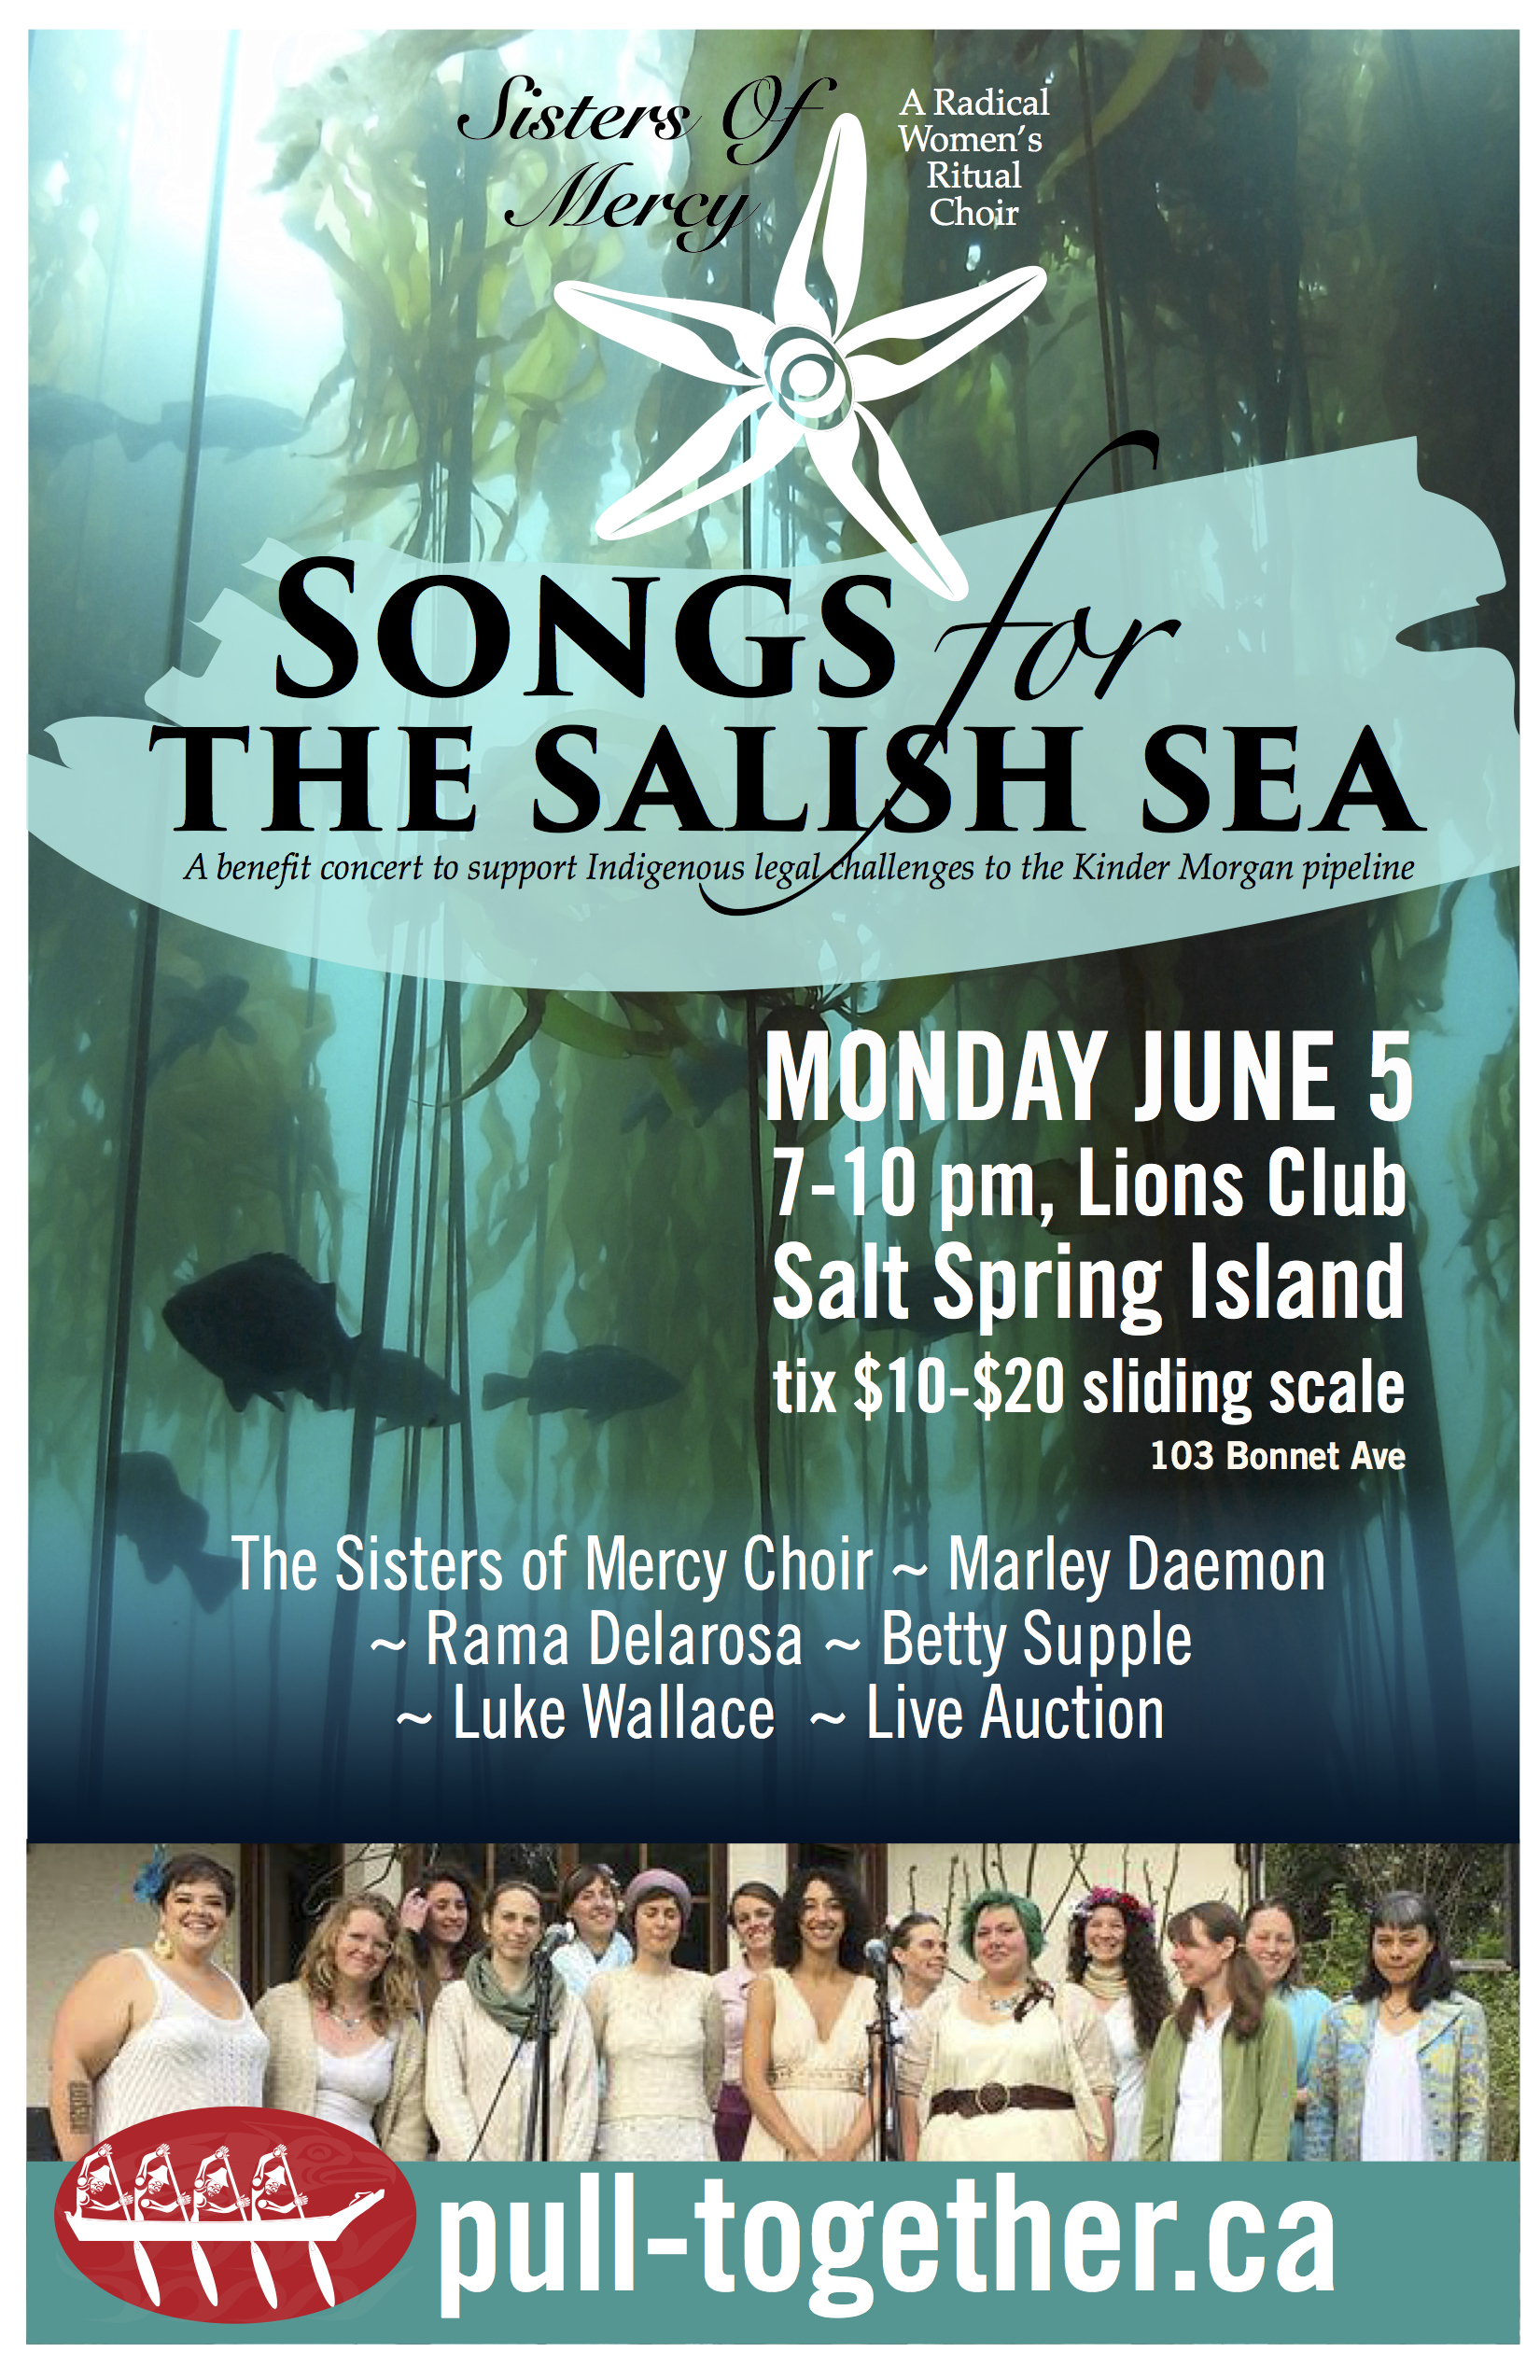 Check out Sisters of Mercy Community Choir's team